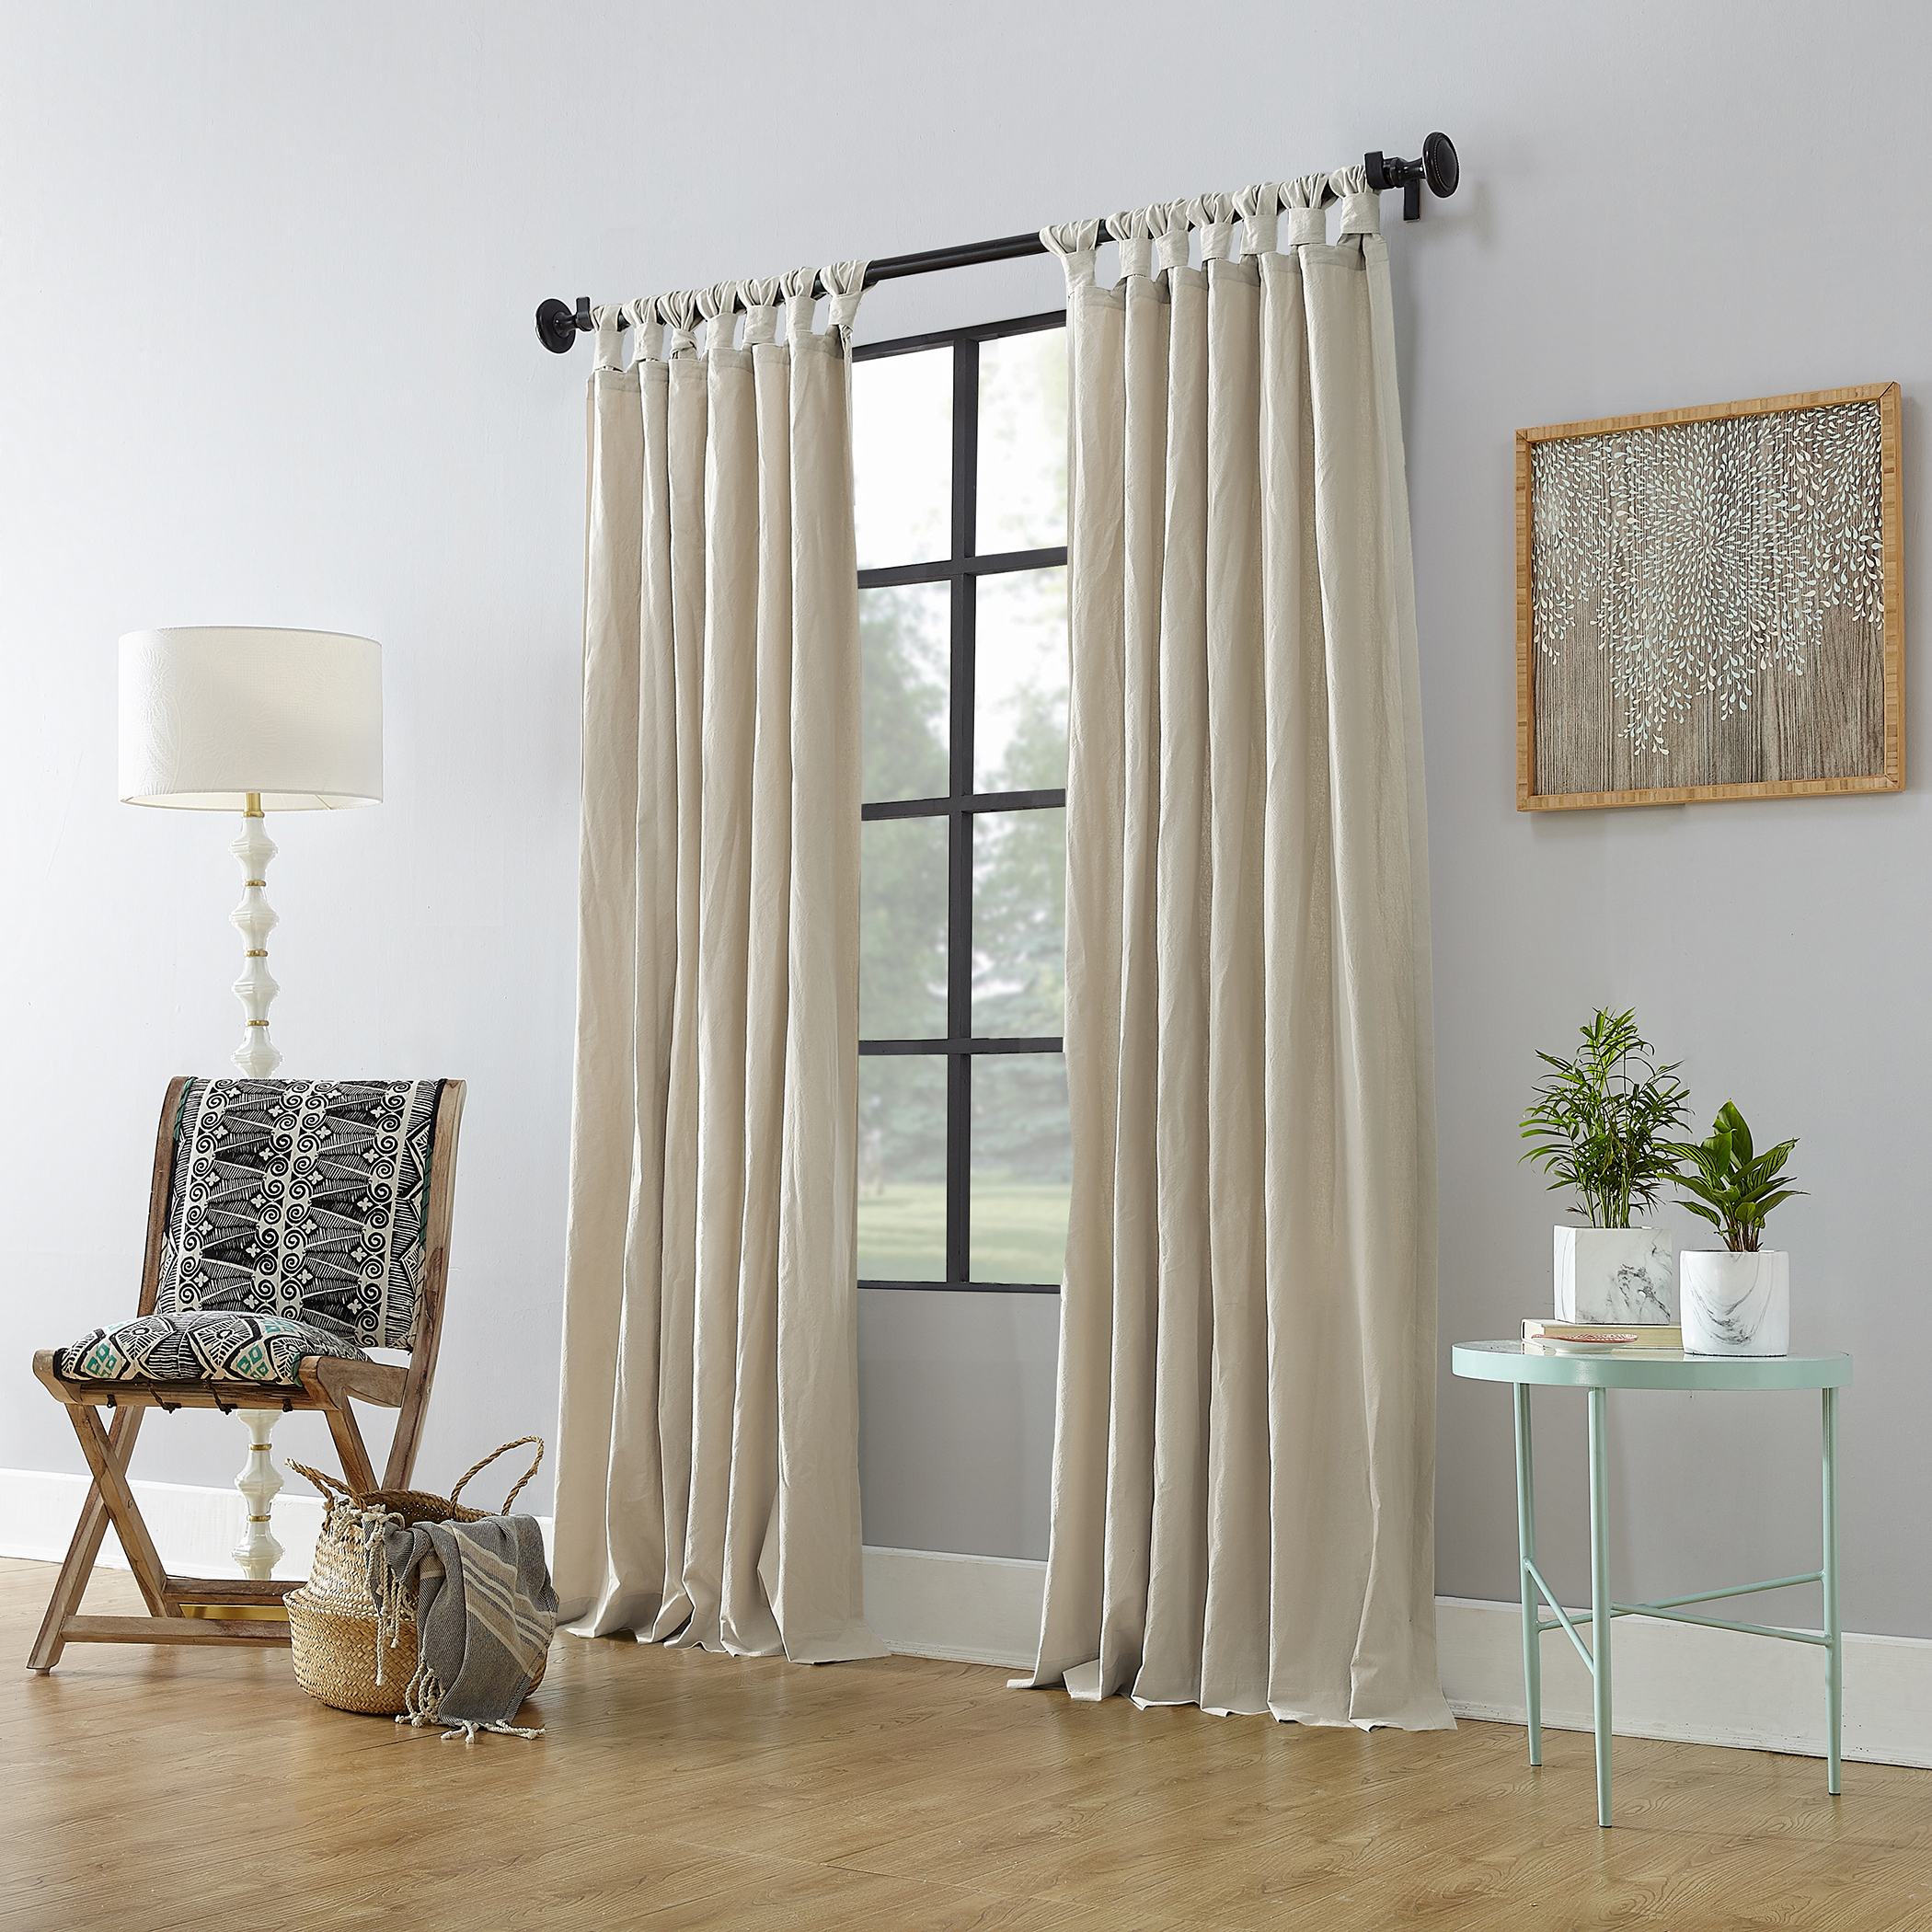 Archaeo Washed Cotton Twist Tab Curtain – Walmart Inside Archaeo Washed Cotton Twist Tab Single Curtain Panels (View 3 of 20)